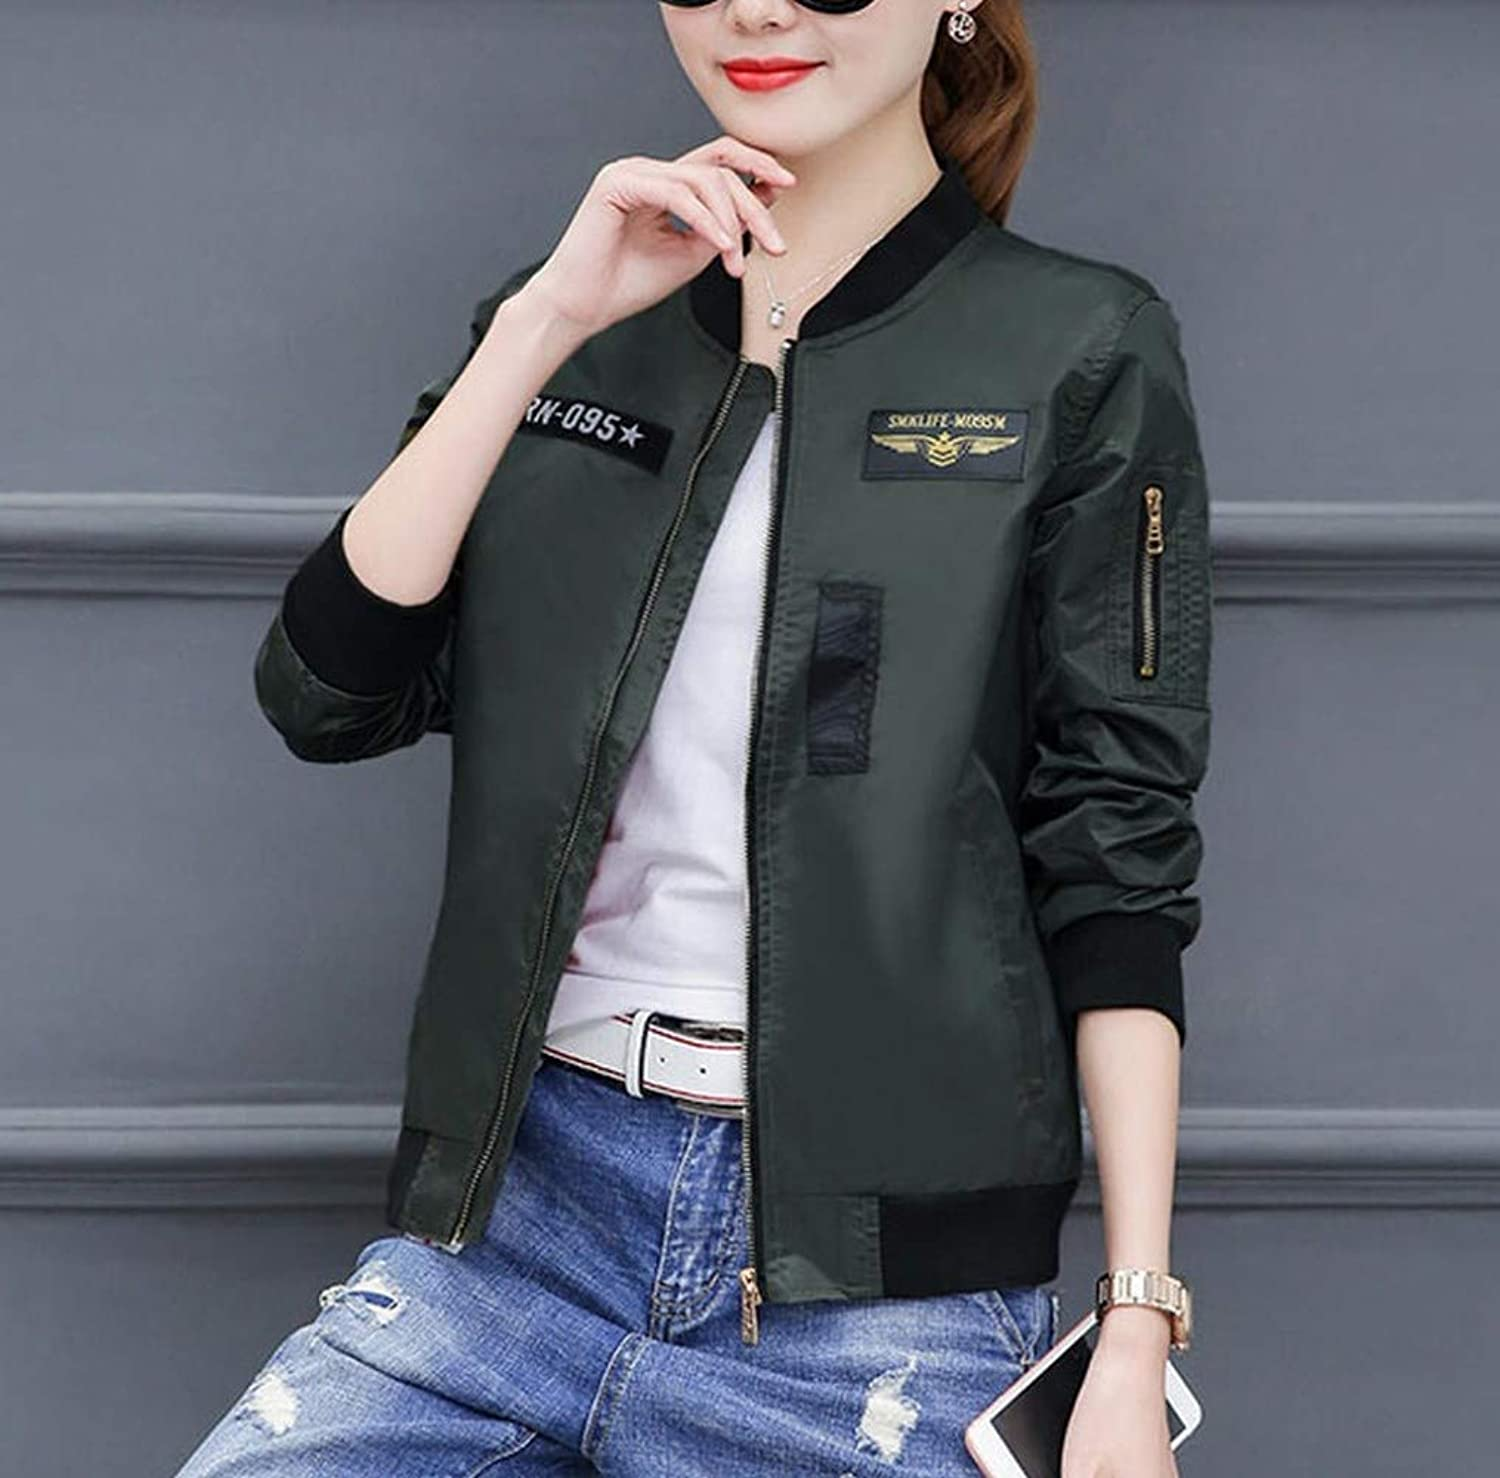 Spring Autumn Women's Jacket Baseball Jacket Warm Jacket DEED